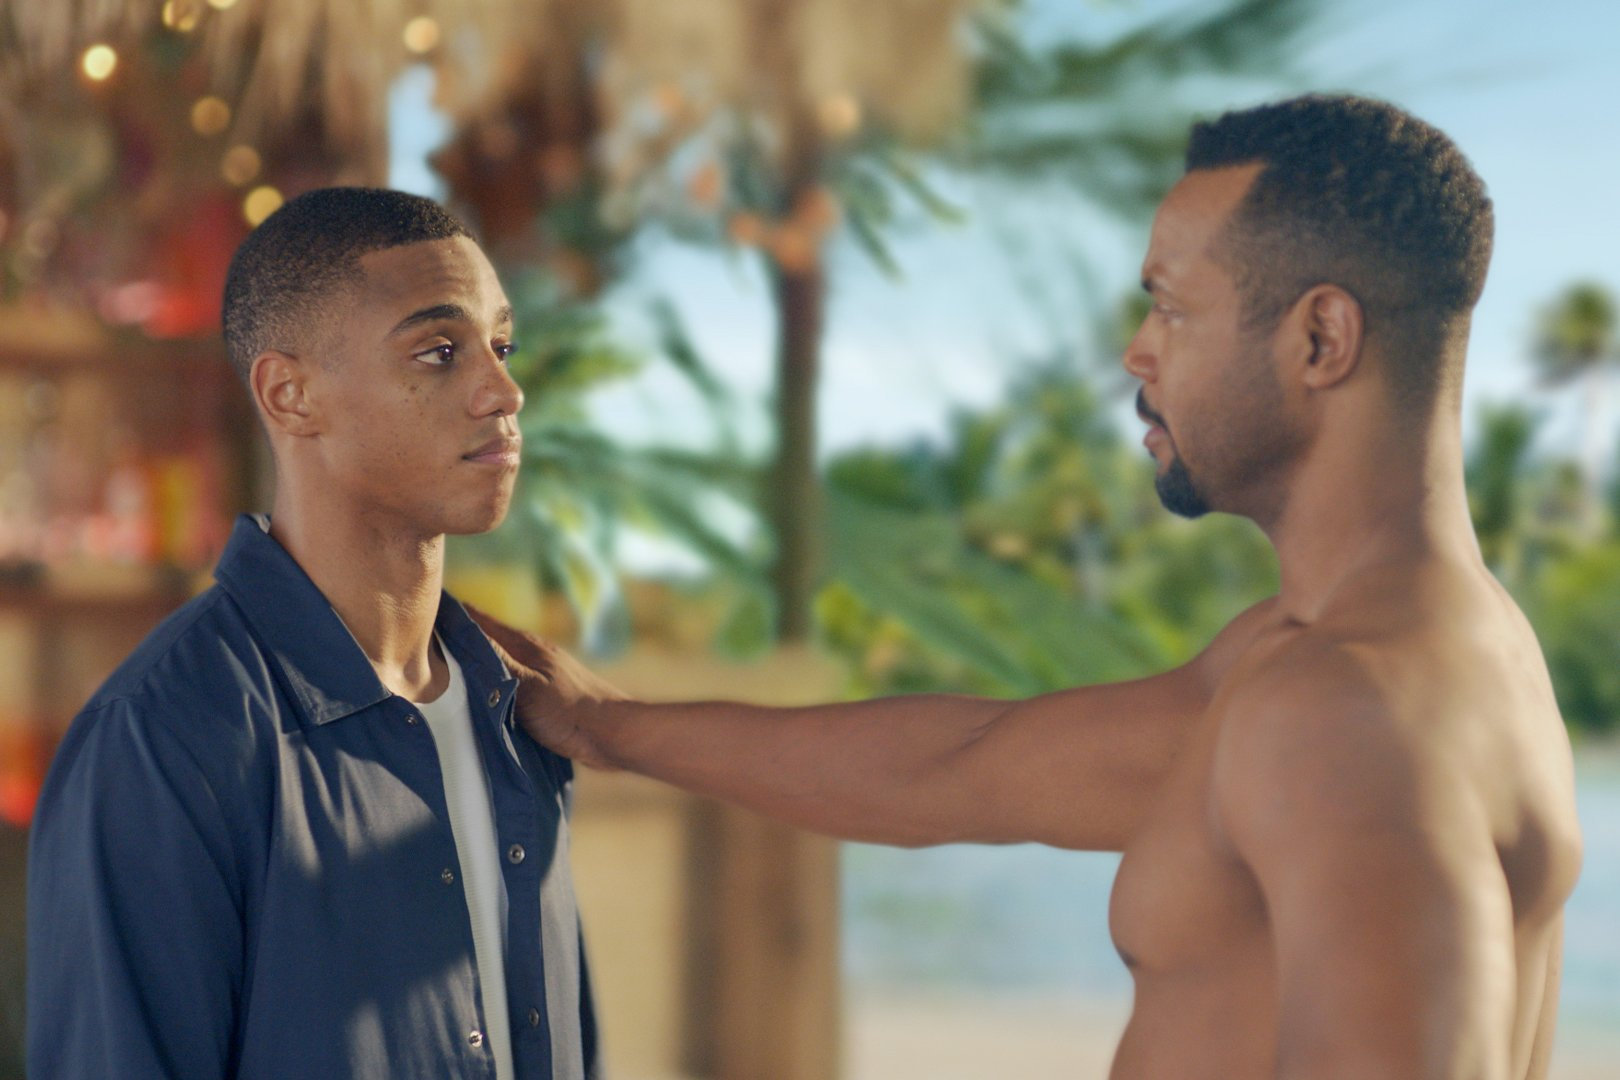 Old Spice Guy returns for 10th anniversary with new ads co-starring 'son' Keith Powers